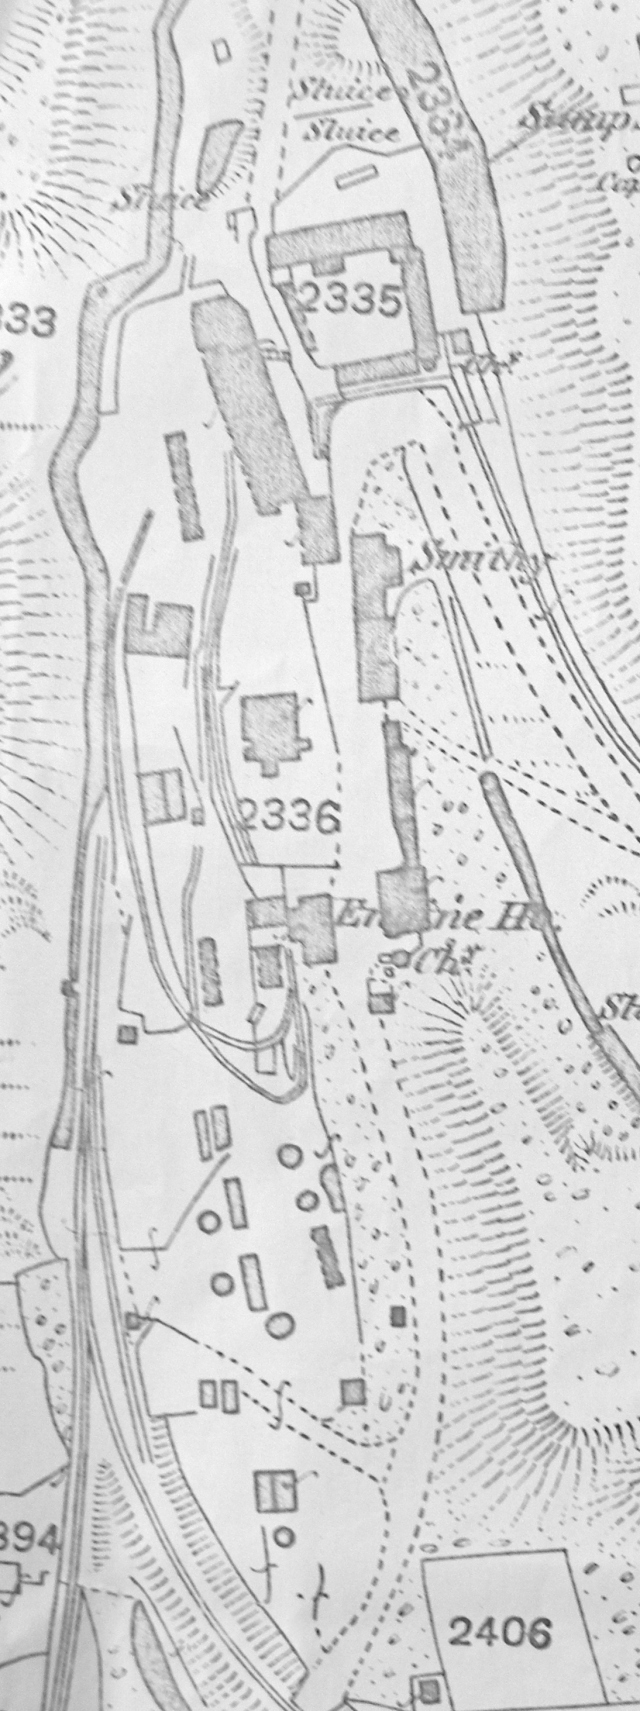 An extract from the OS 1885 map showing the Caradon Mine dressing floor